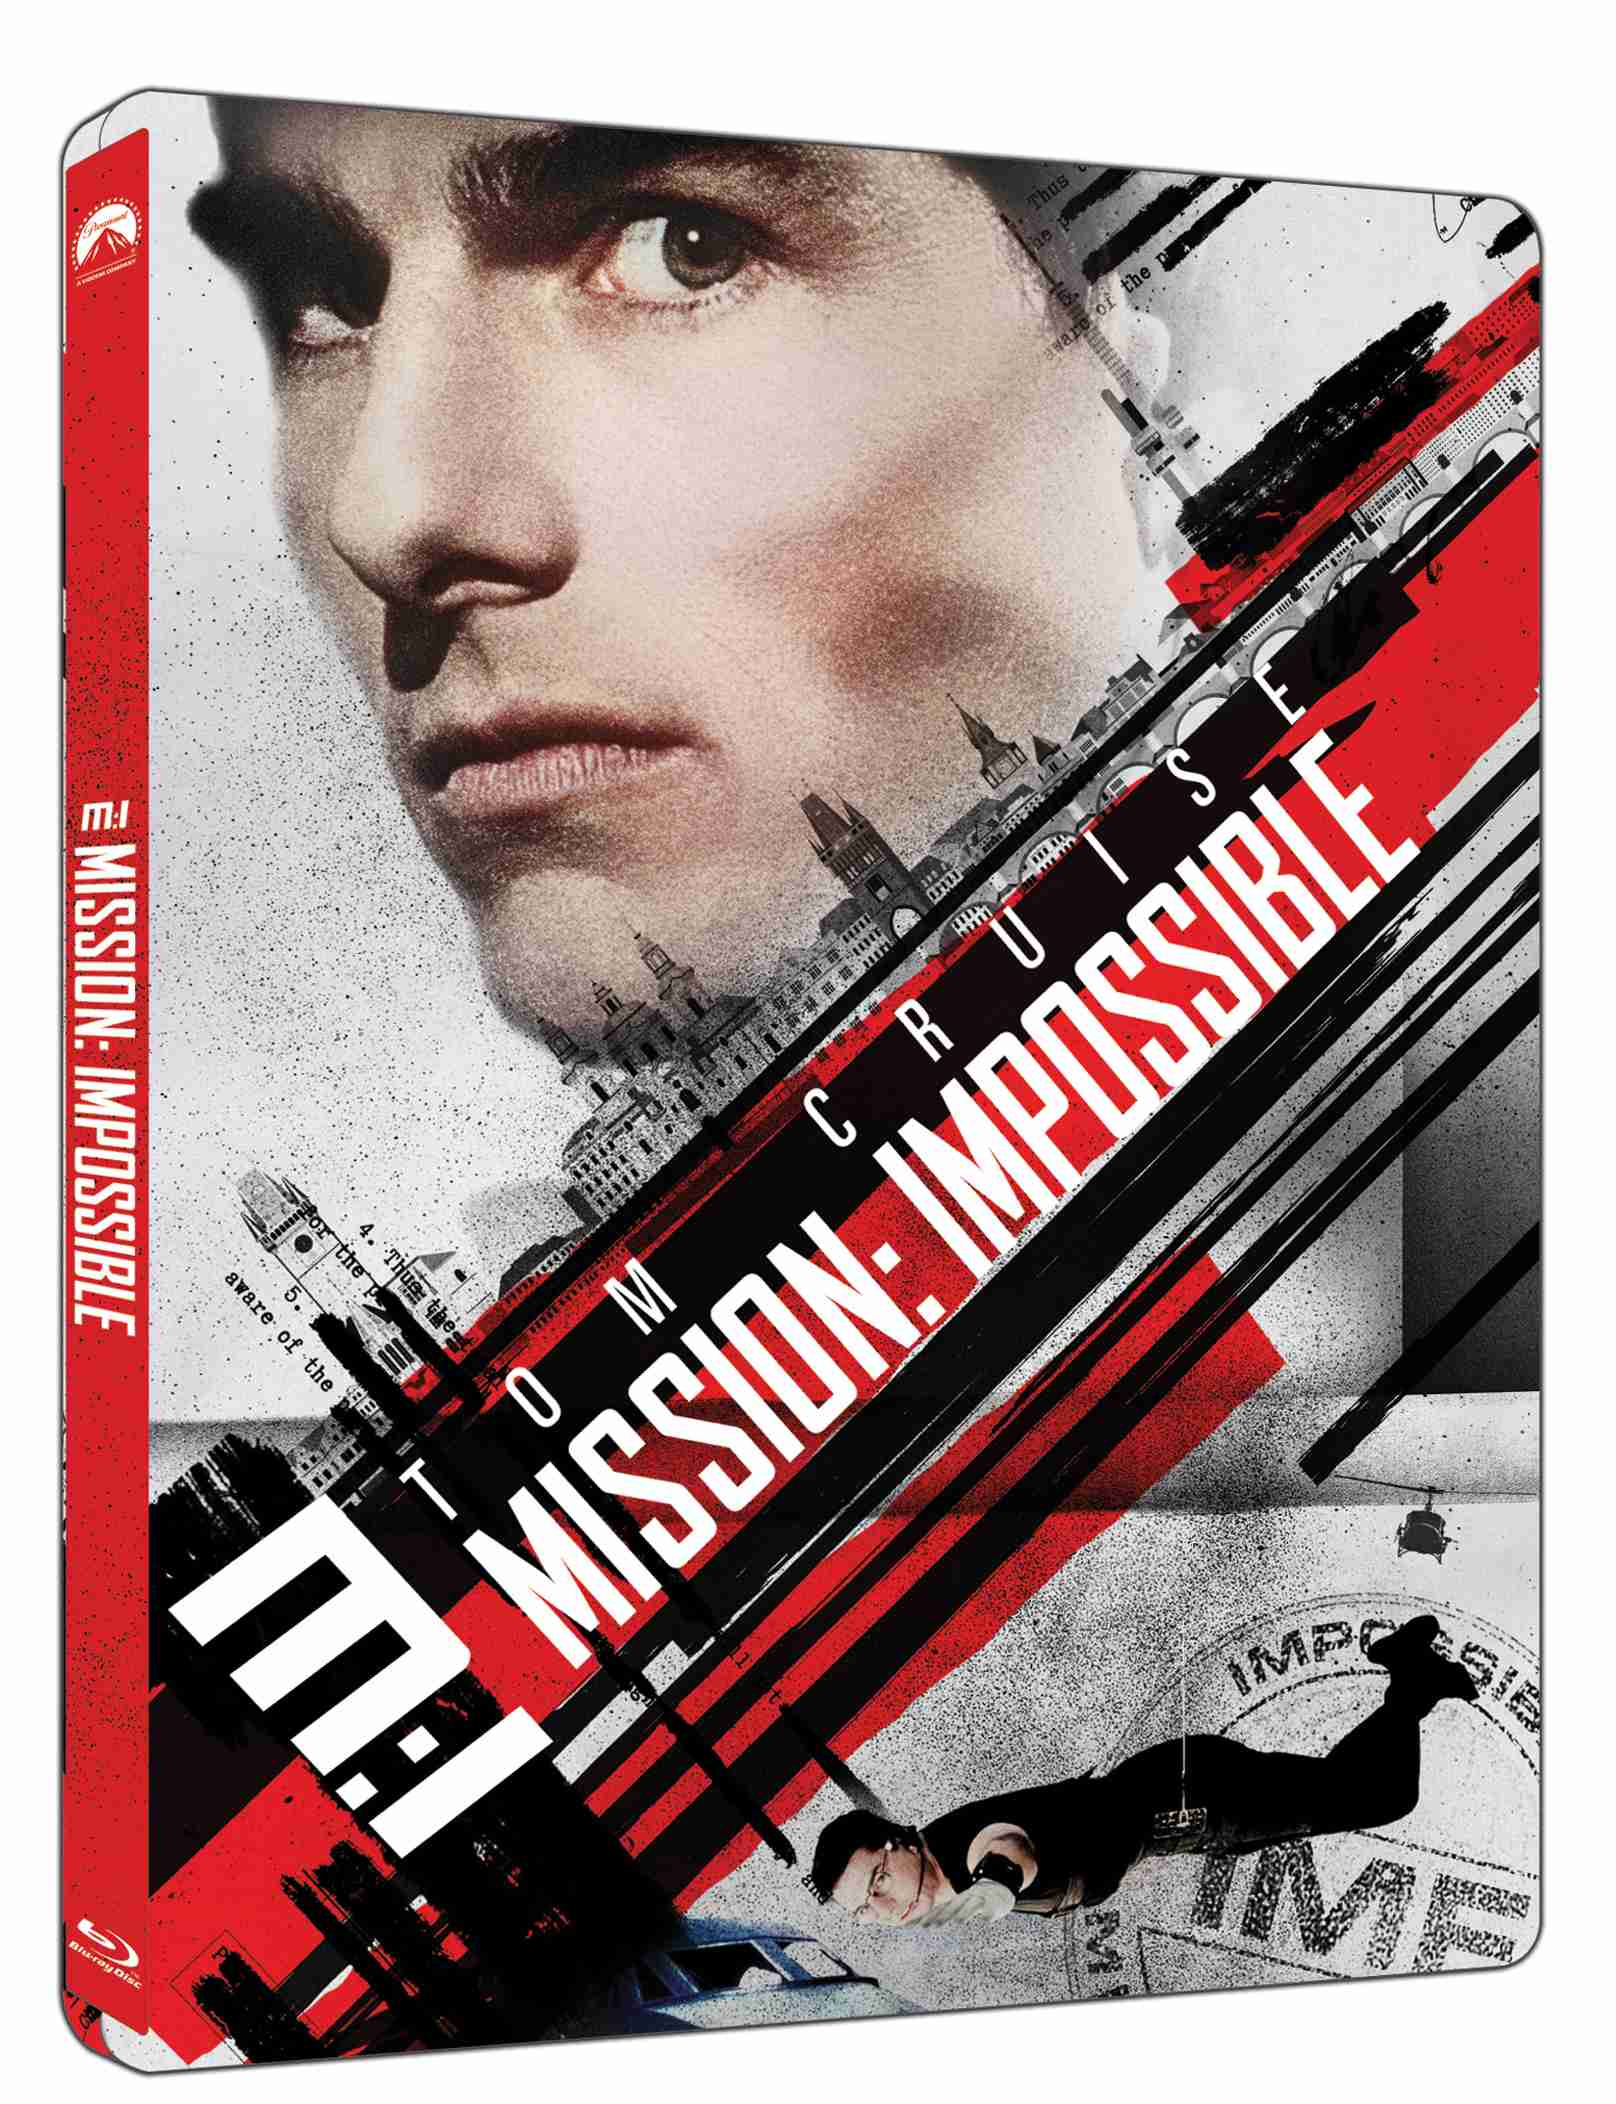 Mission: Impossible (4K ULTRA HD) Steelbook - UHD Blu-ray + Blu-ray (2 BD)